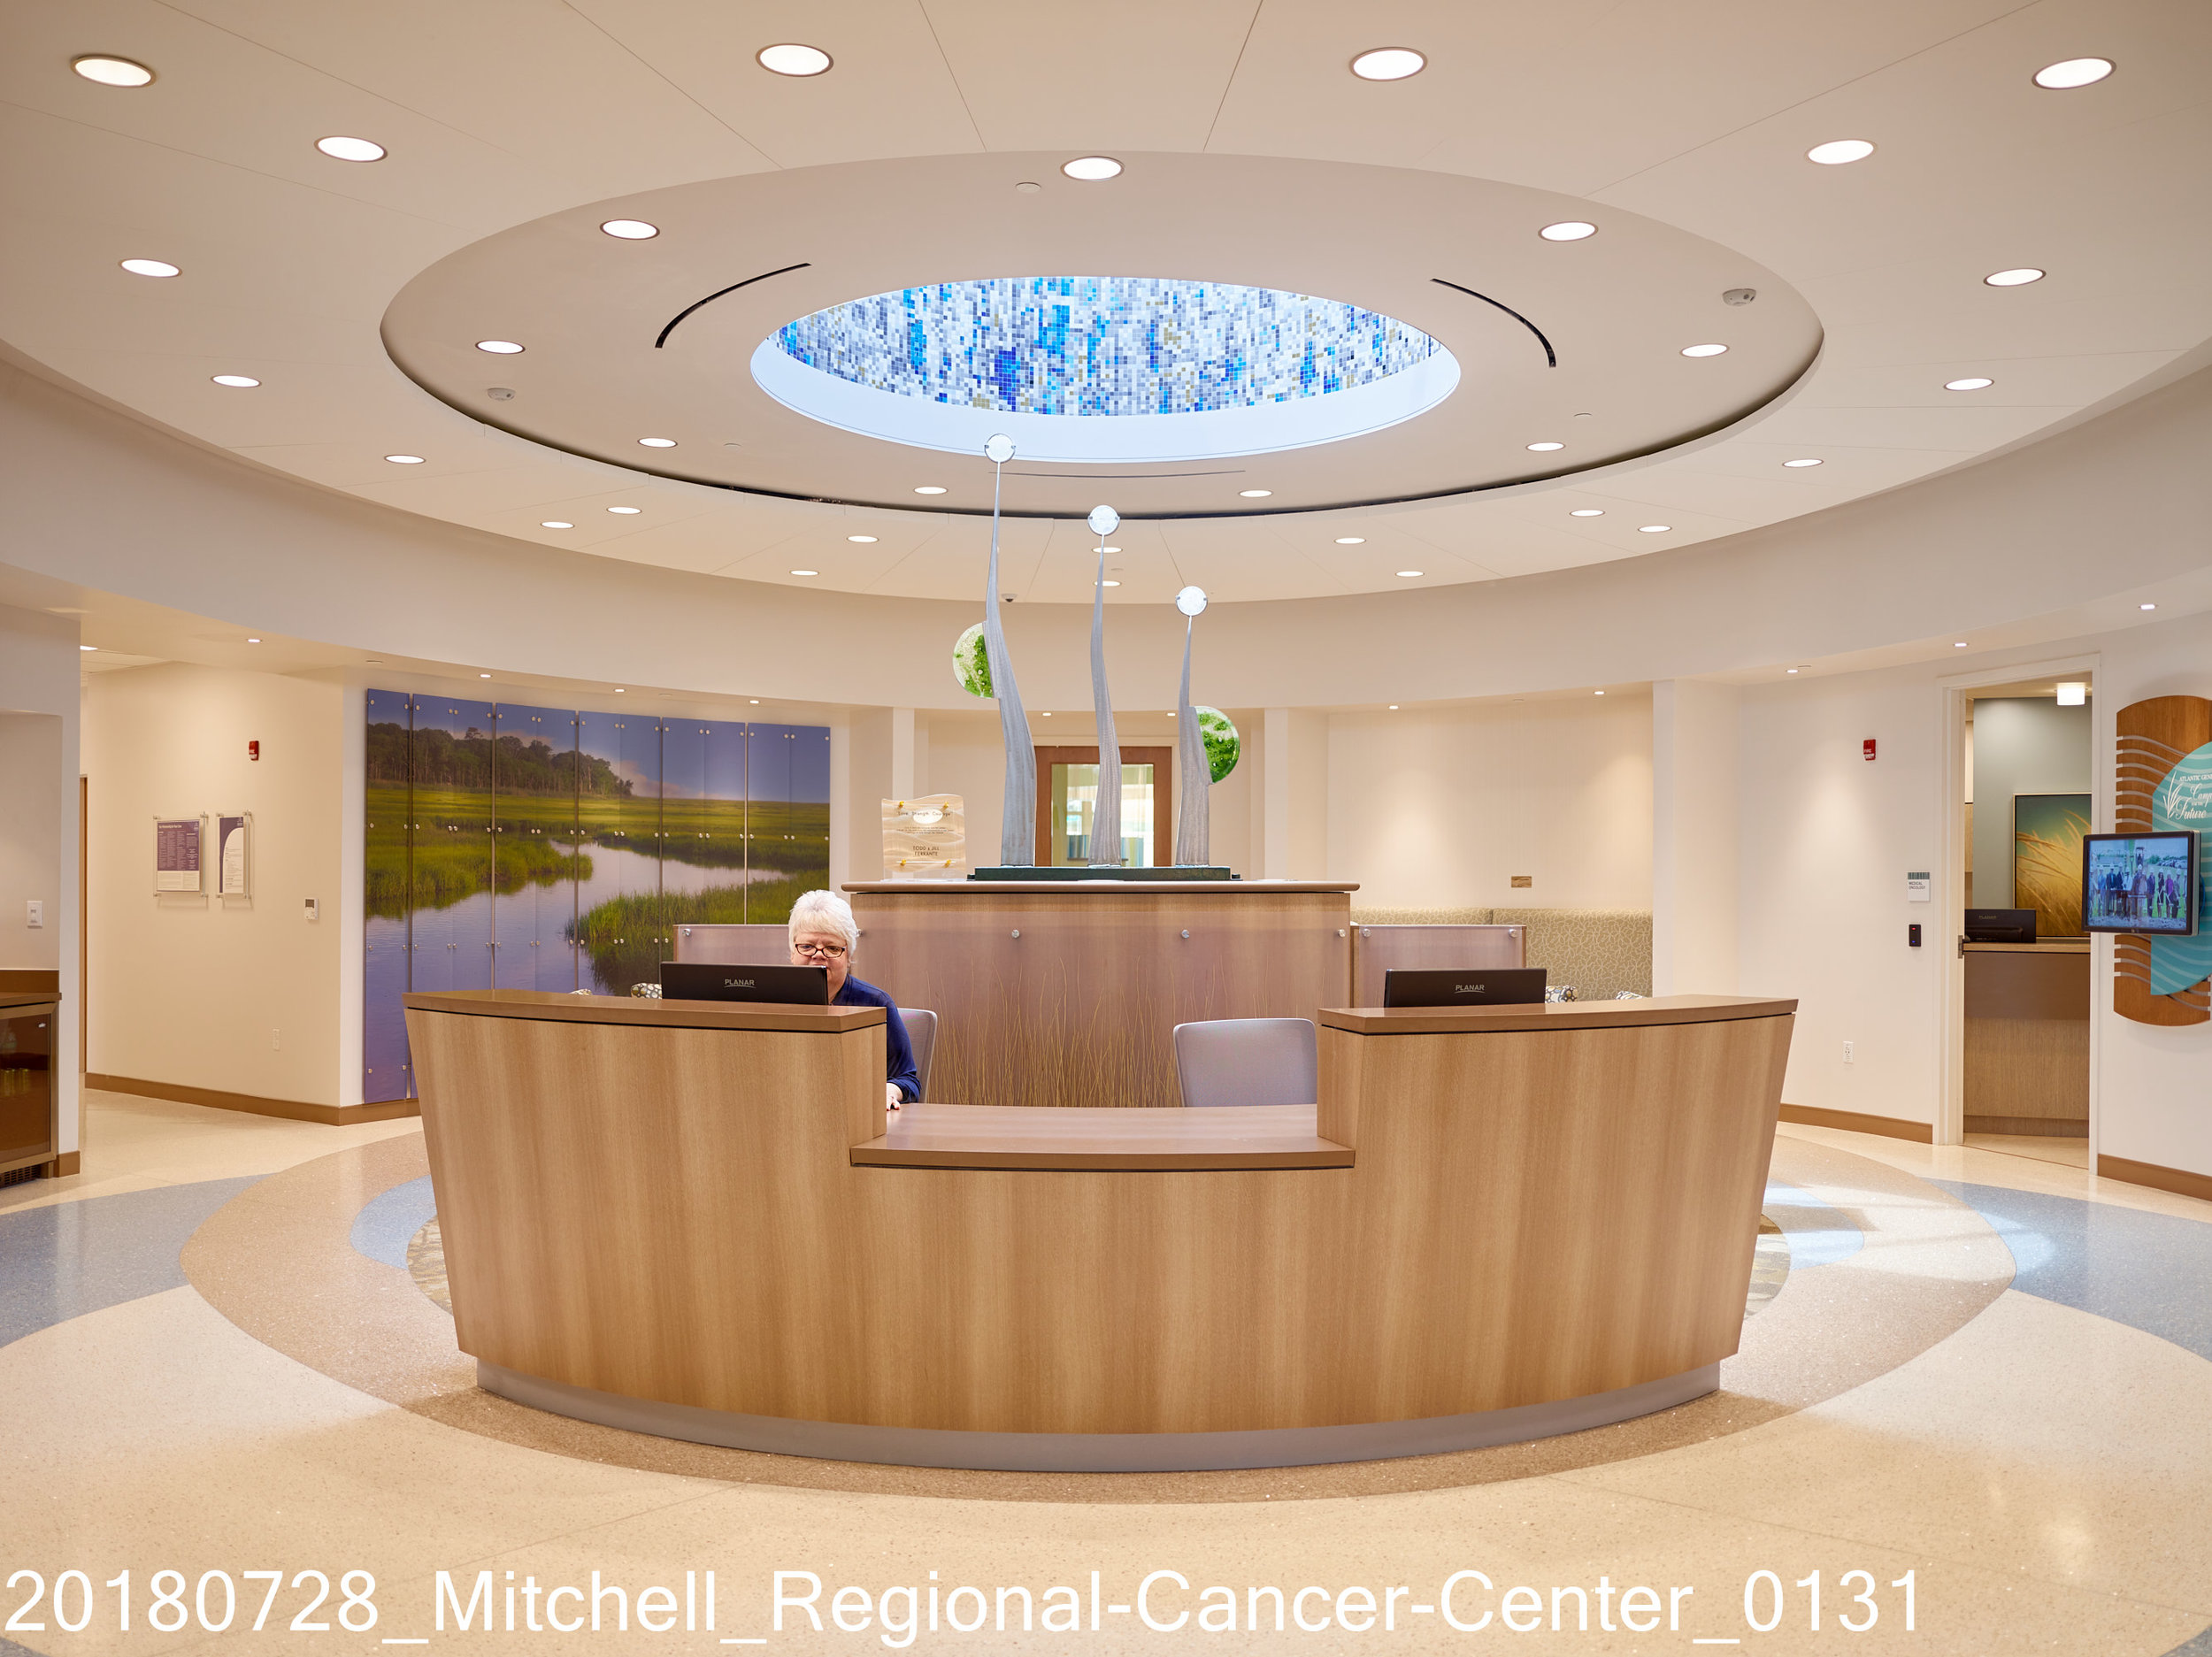 20180728_Mitchell_Regional-Cancer-Center_0131.jpg